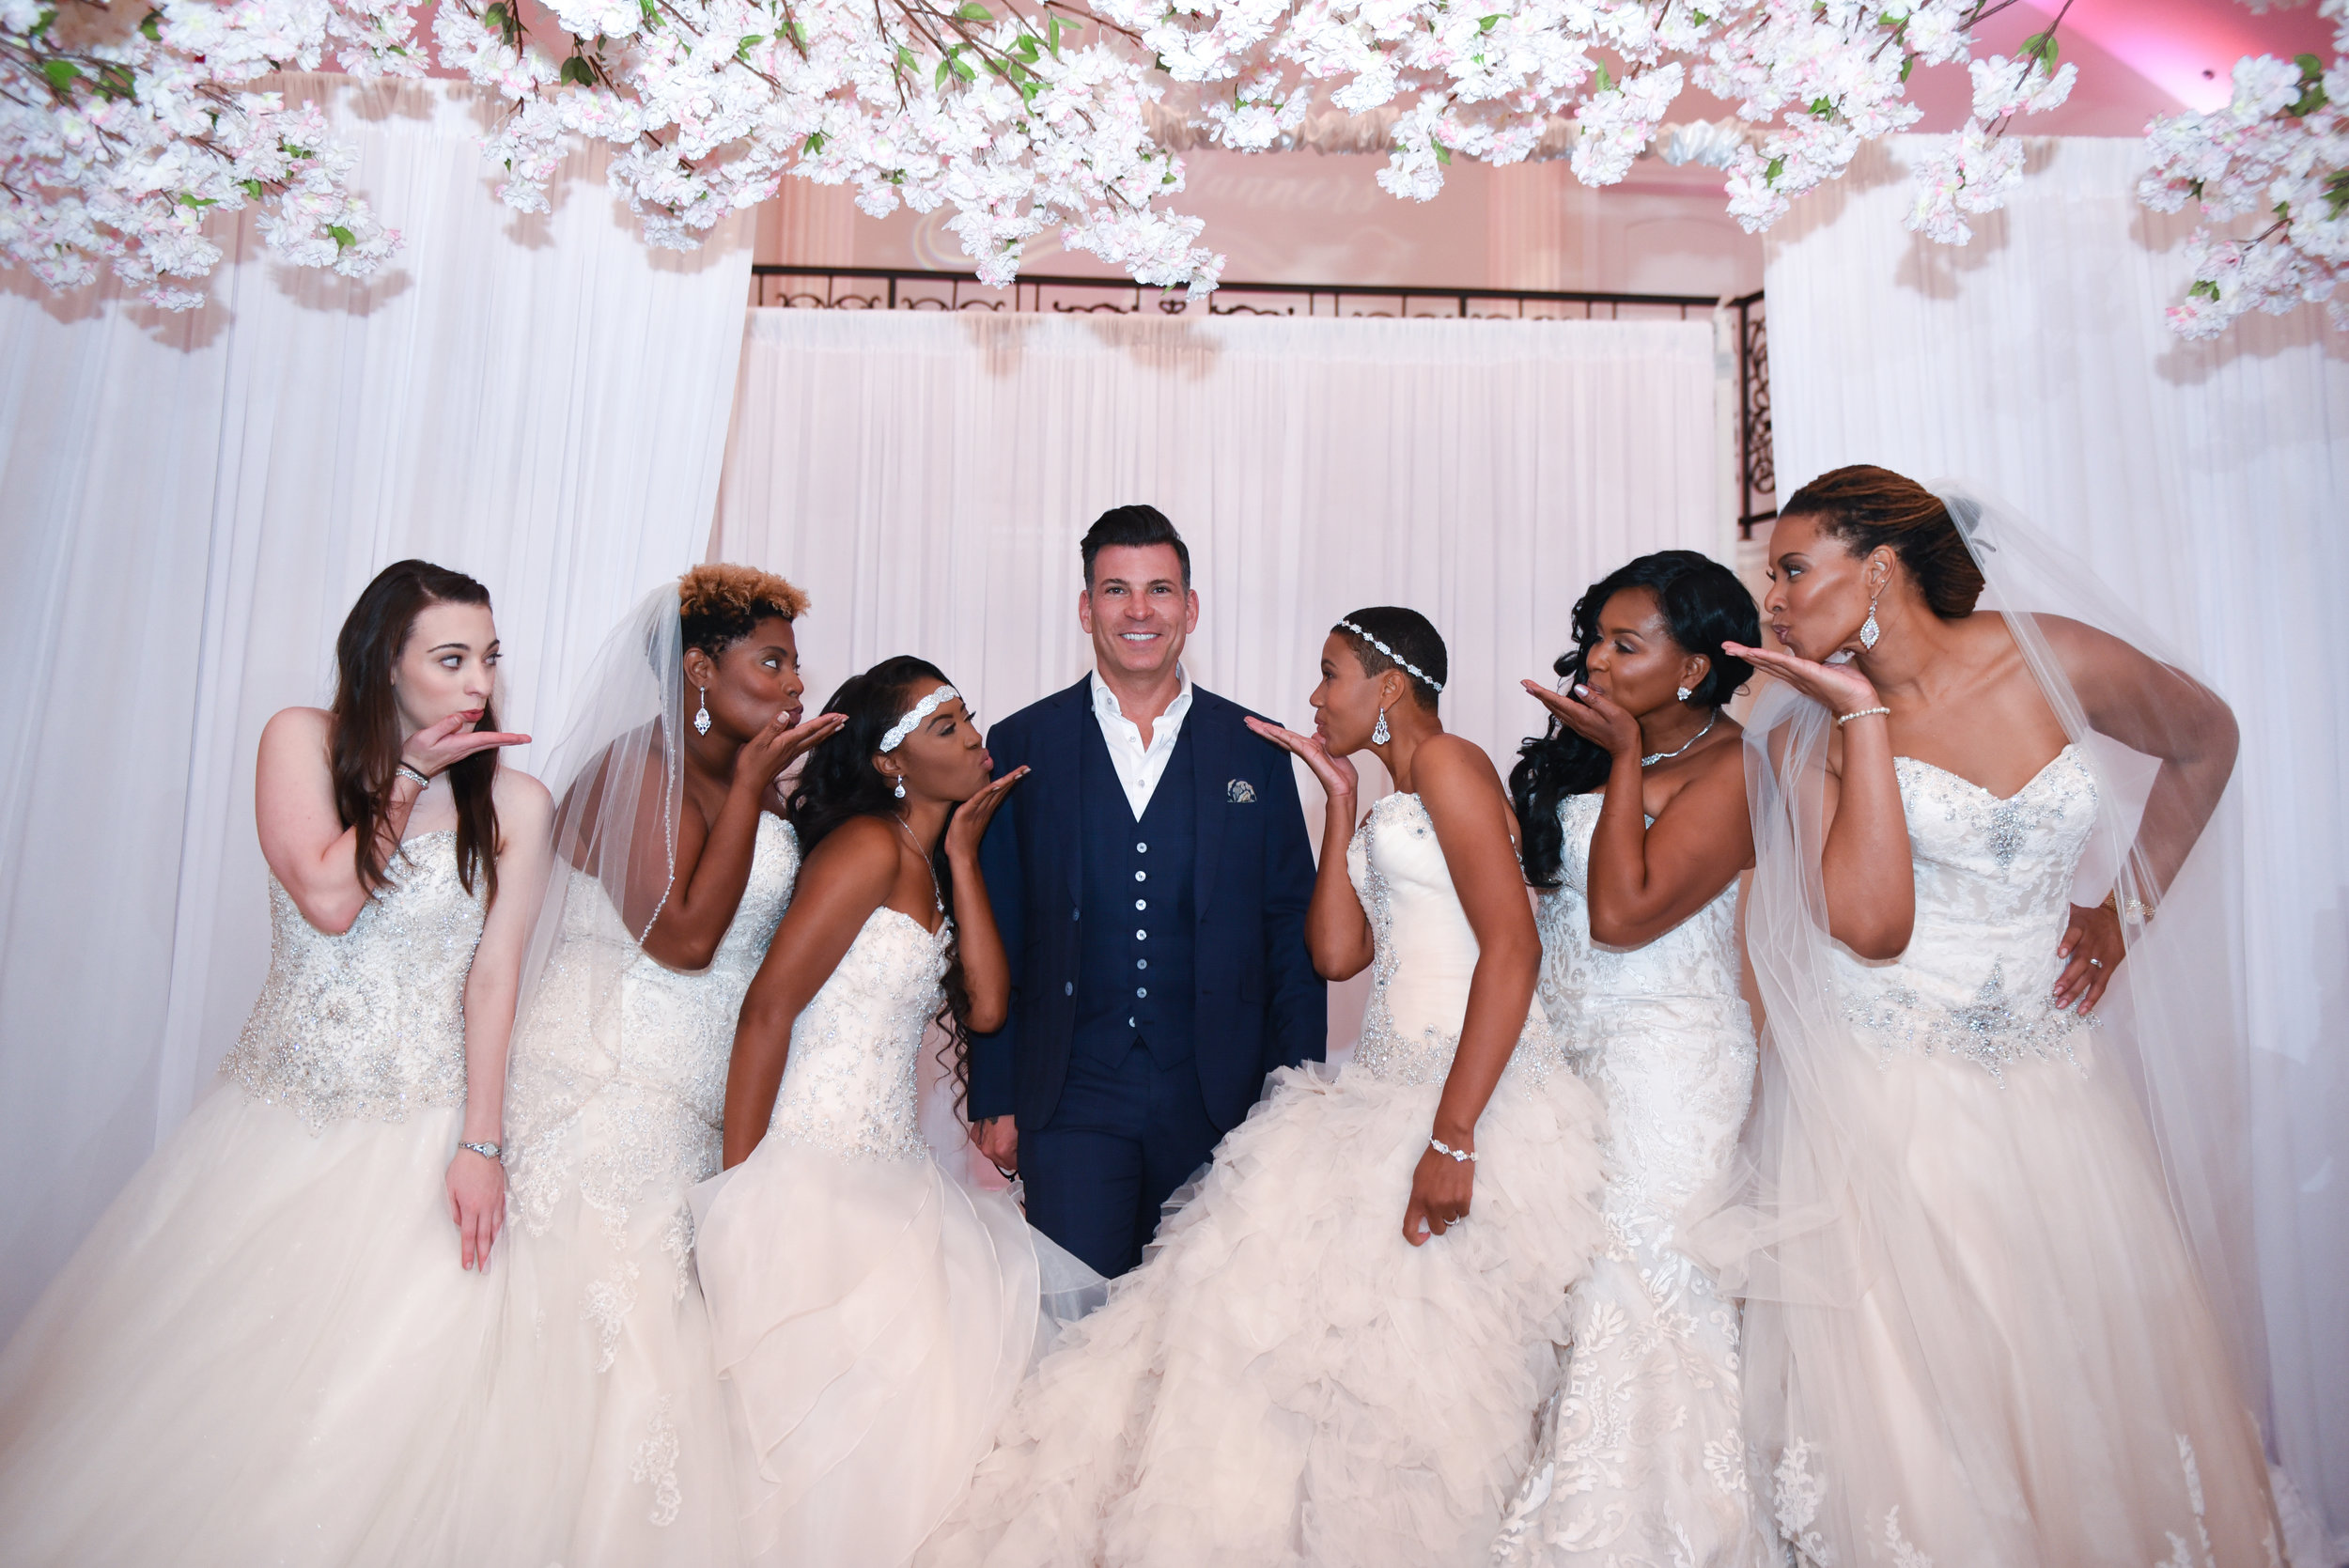 David Tutera Rocks Nola-Promo-37.JPG